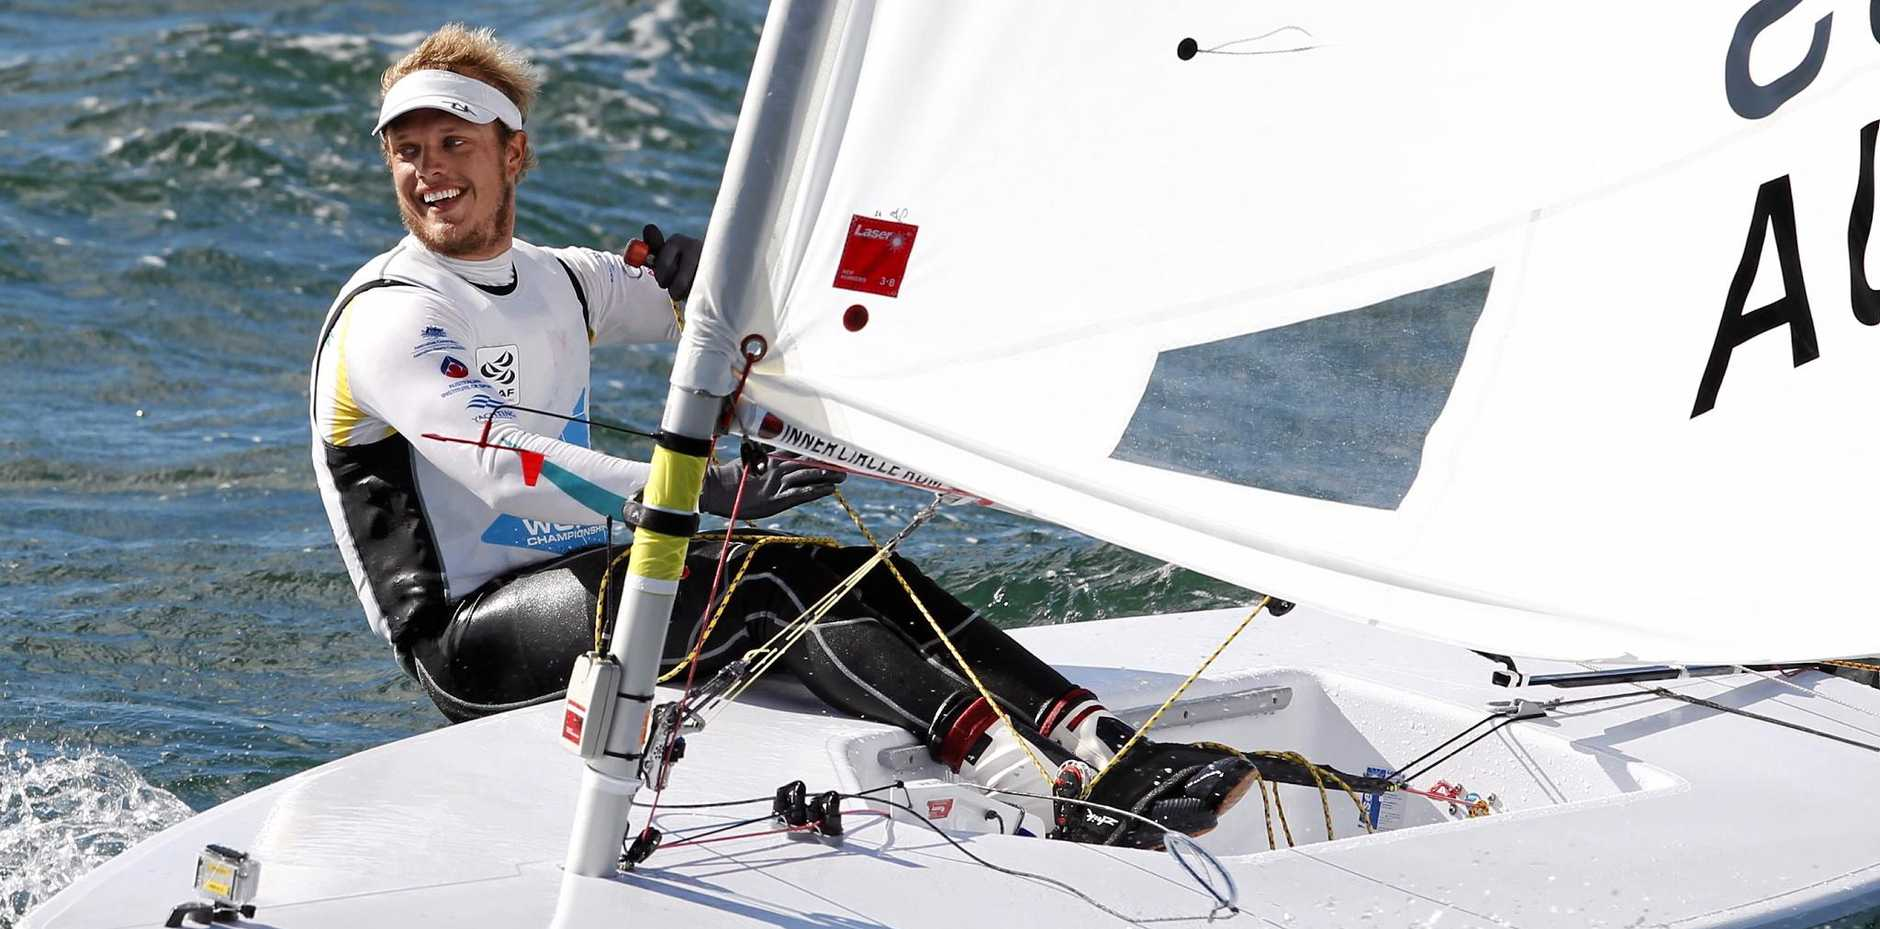 SETTING SAIL: Australian Tom Burton is hoping his strong form can carry him to gold in Rio.